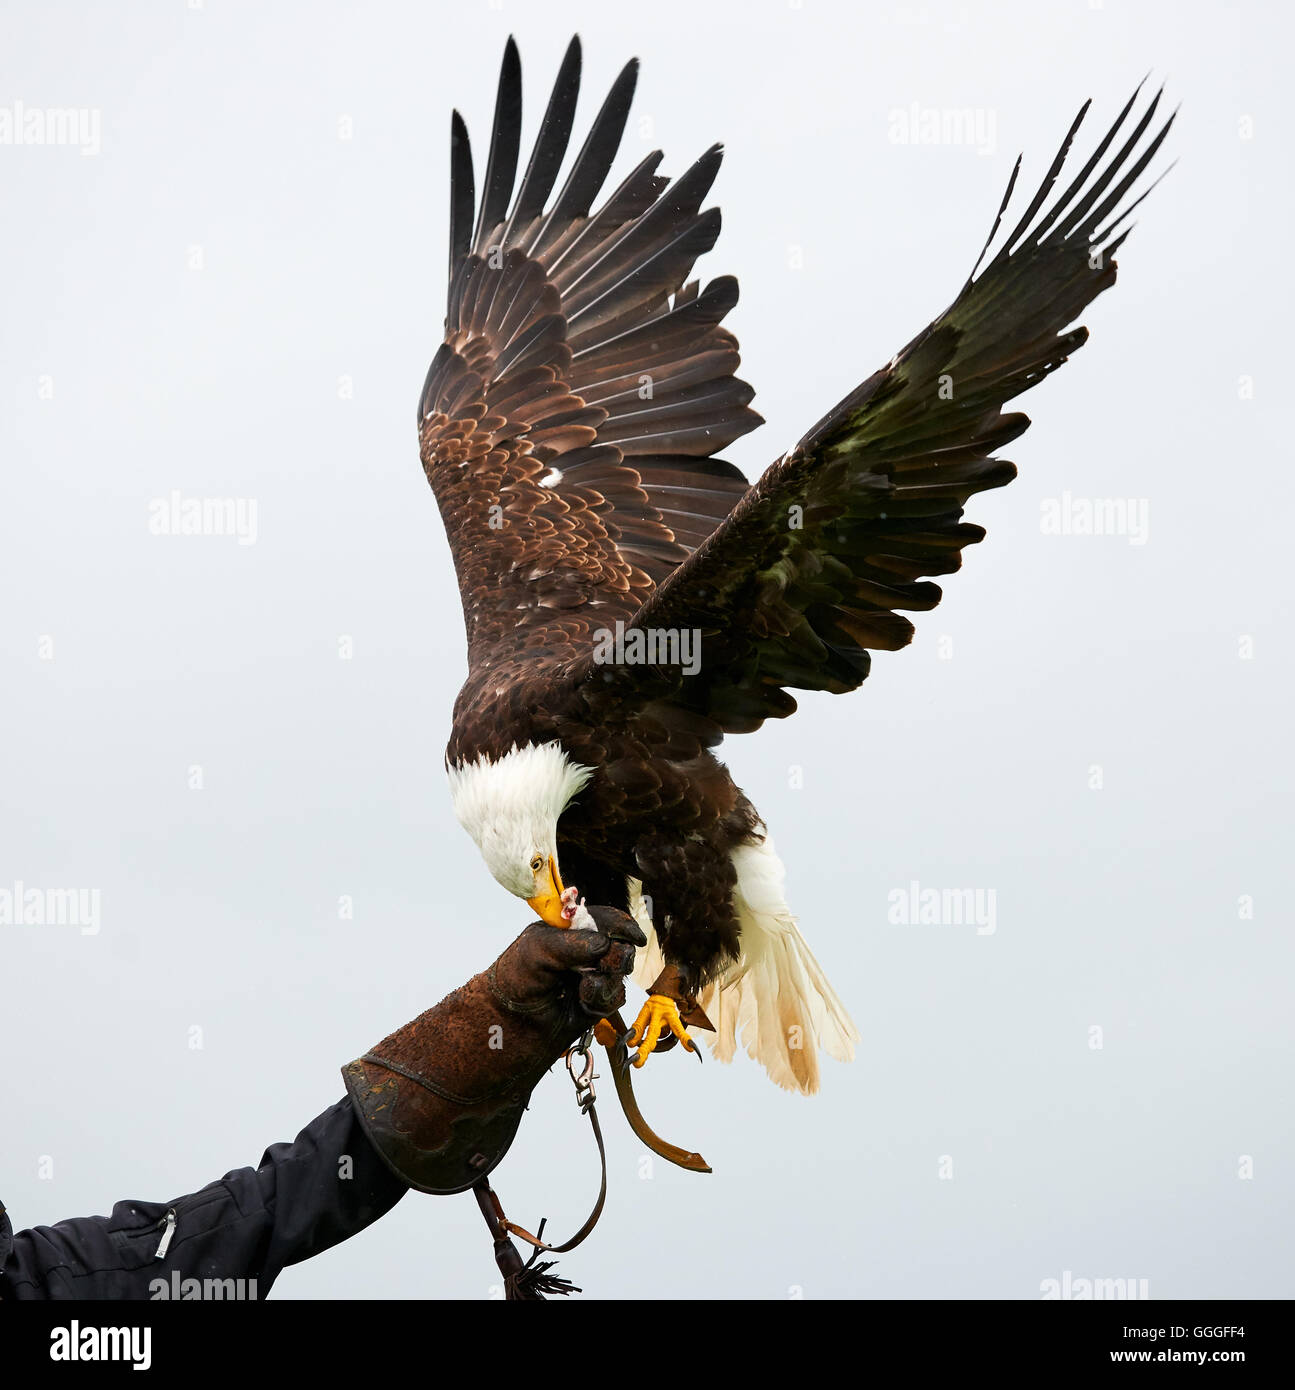 Bald eagle with outstretched wings in a falconry show - Stock Image